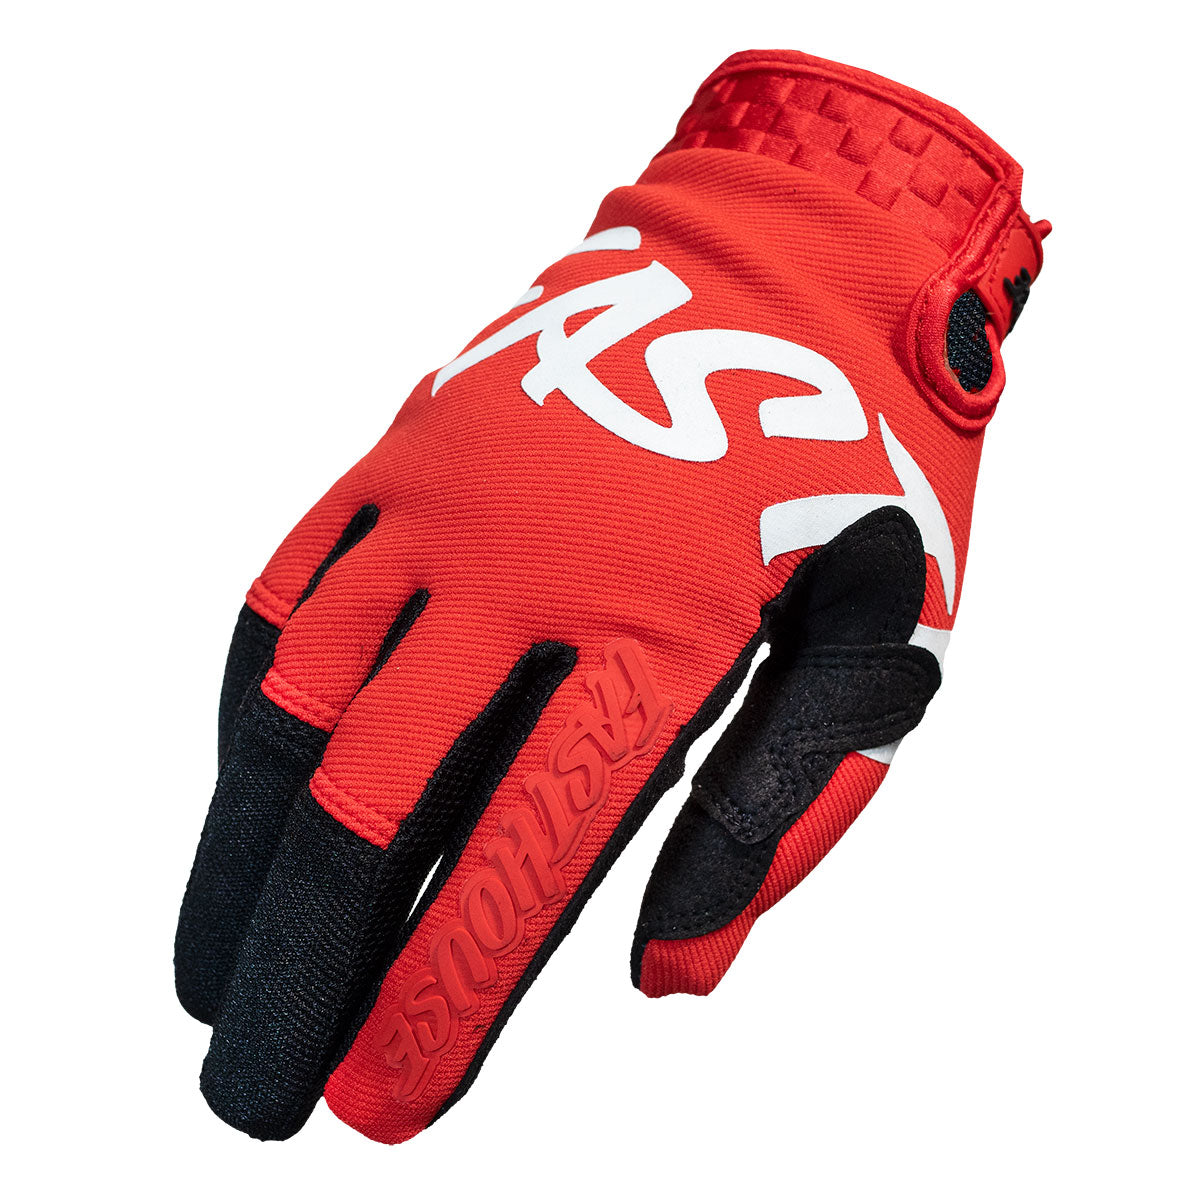 Sector Glove - Red/Black